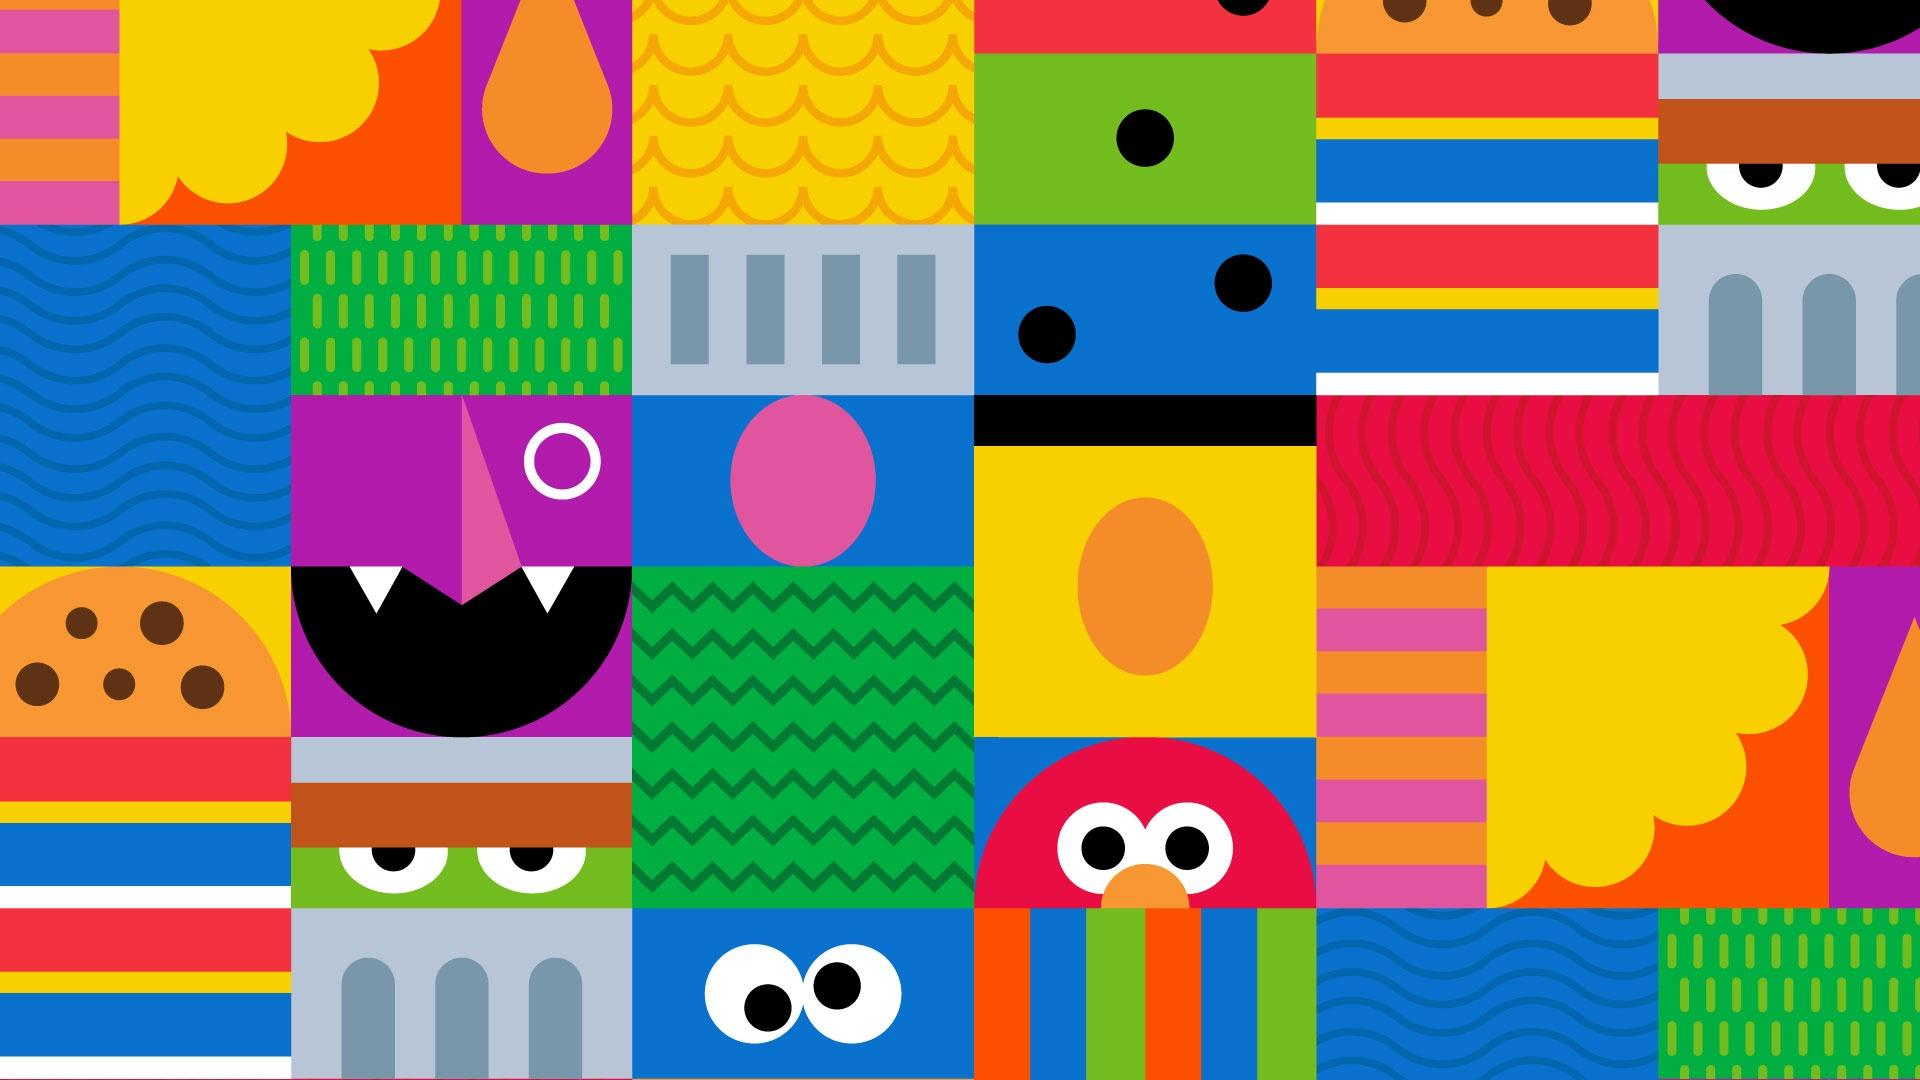 a colorful mosiac of shapes and other identifying features of various Sesame Street characters.